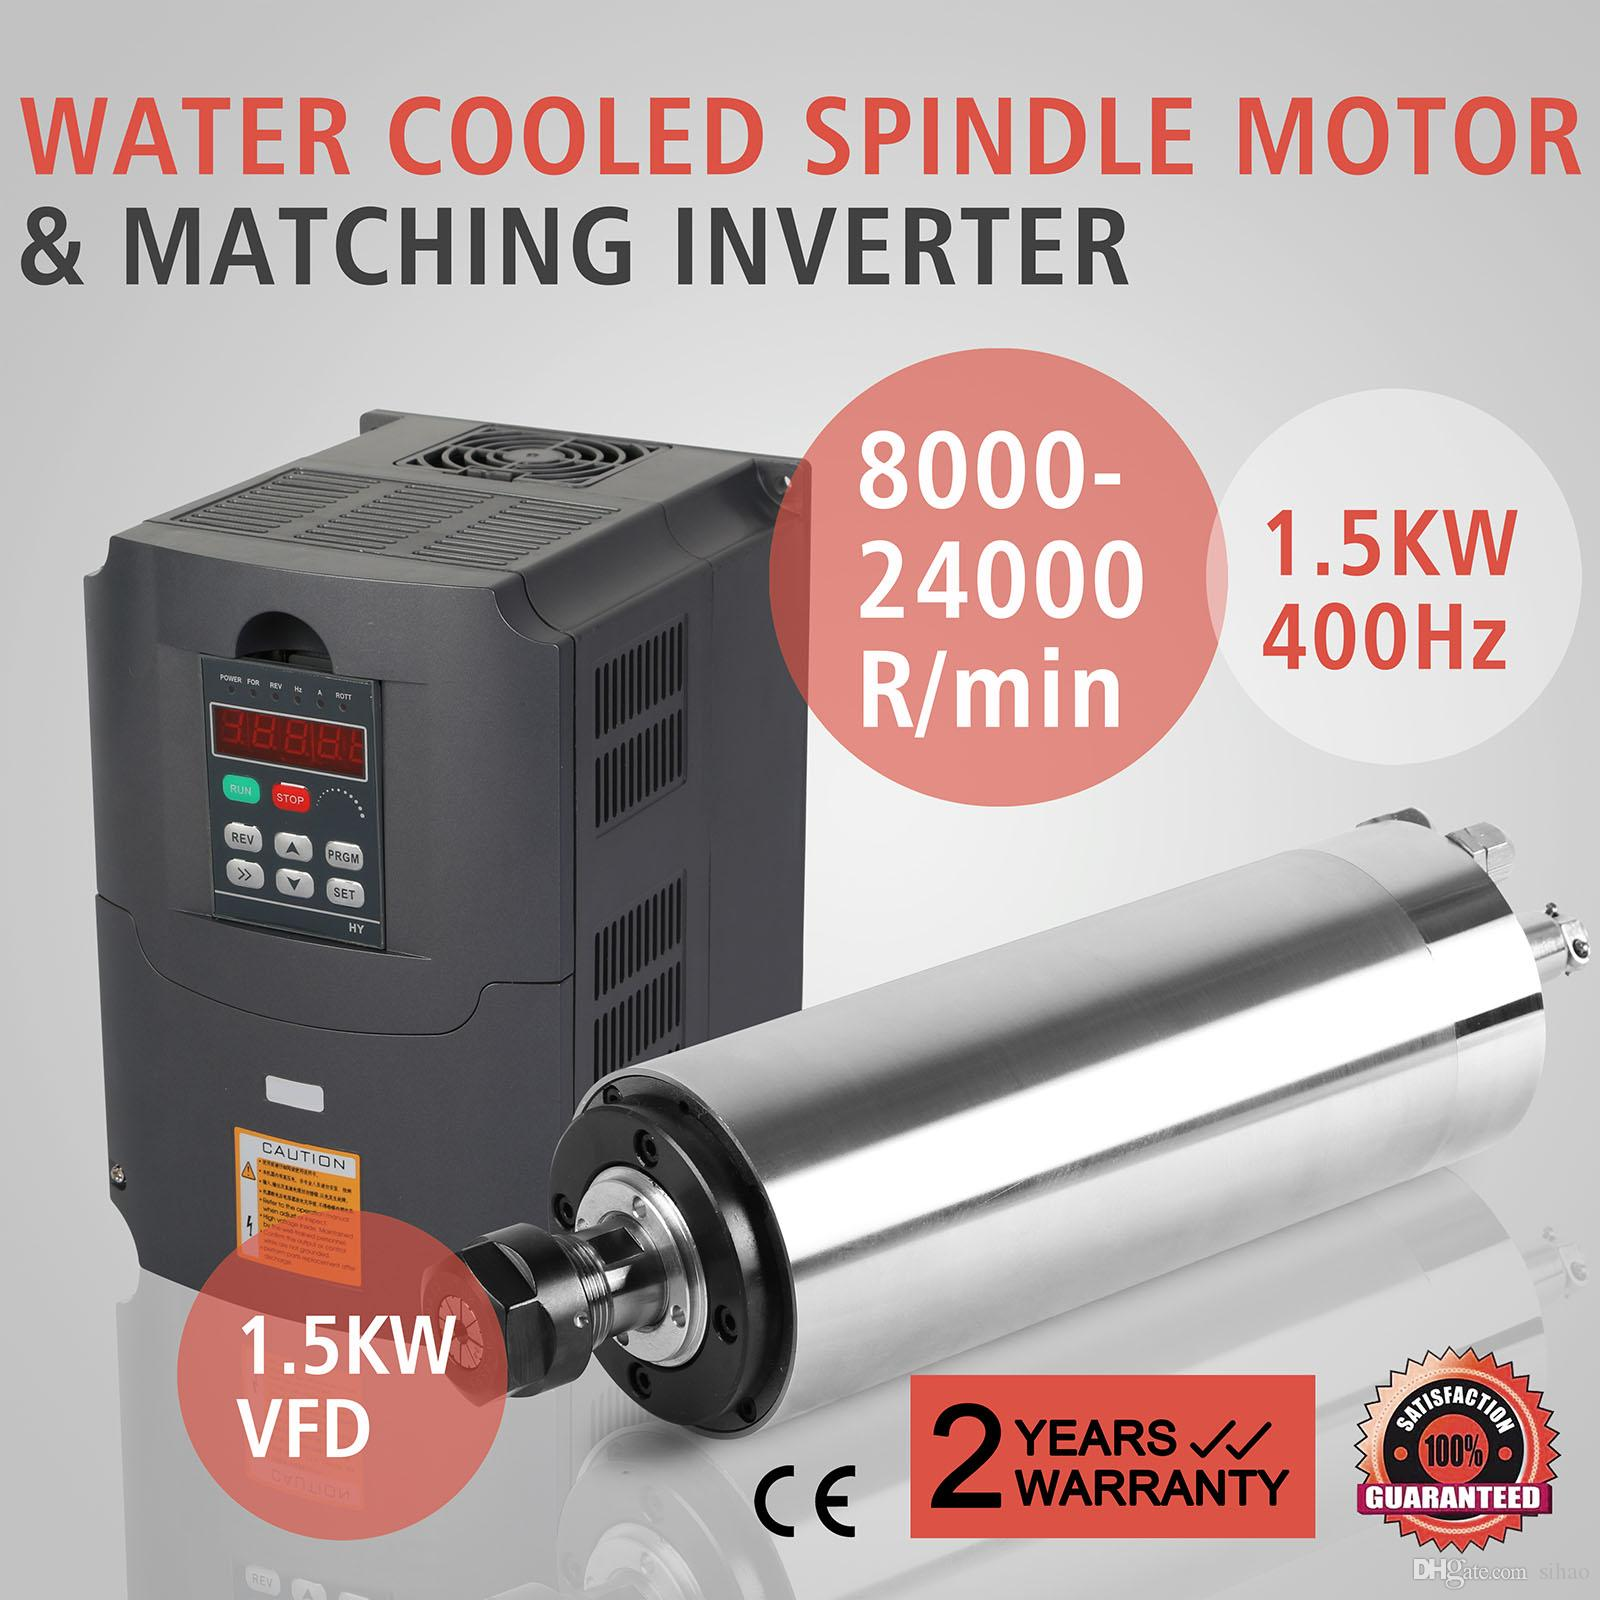 1.5KW VFD Kit W/ 1.5KW Water Cooled Spindle Motor 1.5KW Water-cooling Spindle Motor Matching Inverter